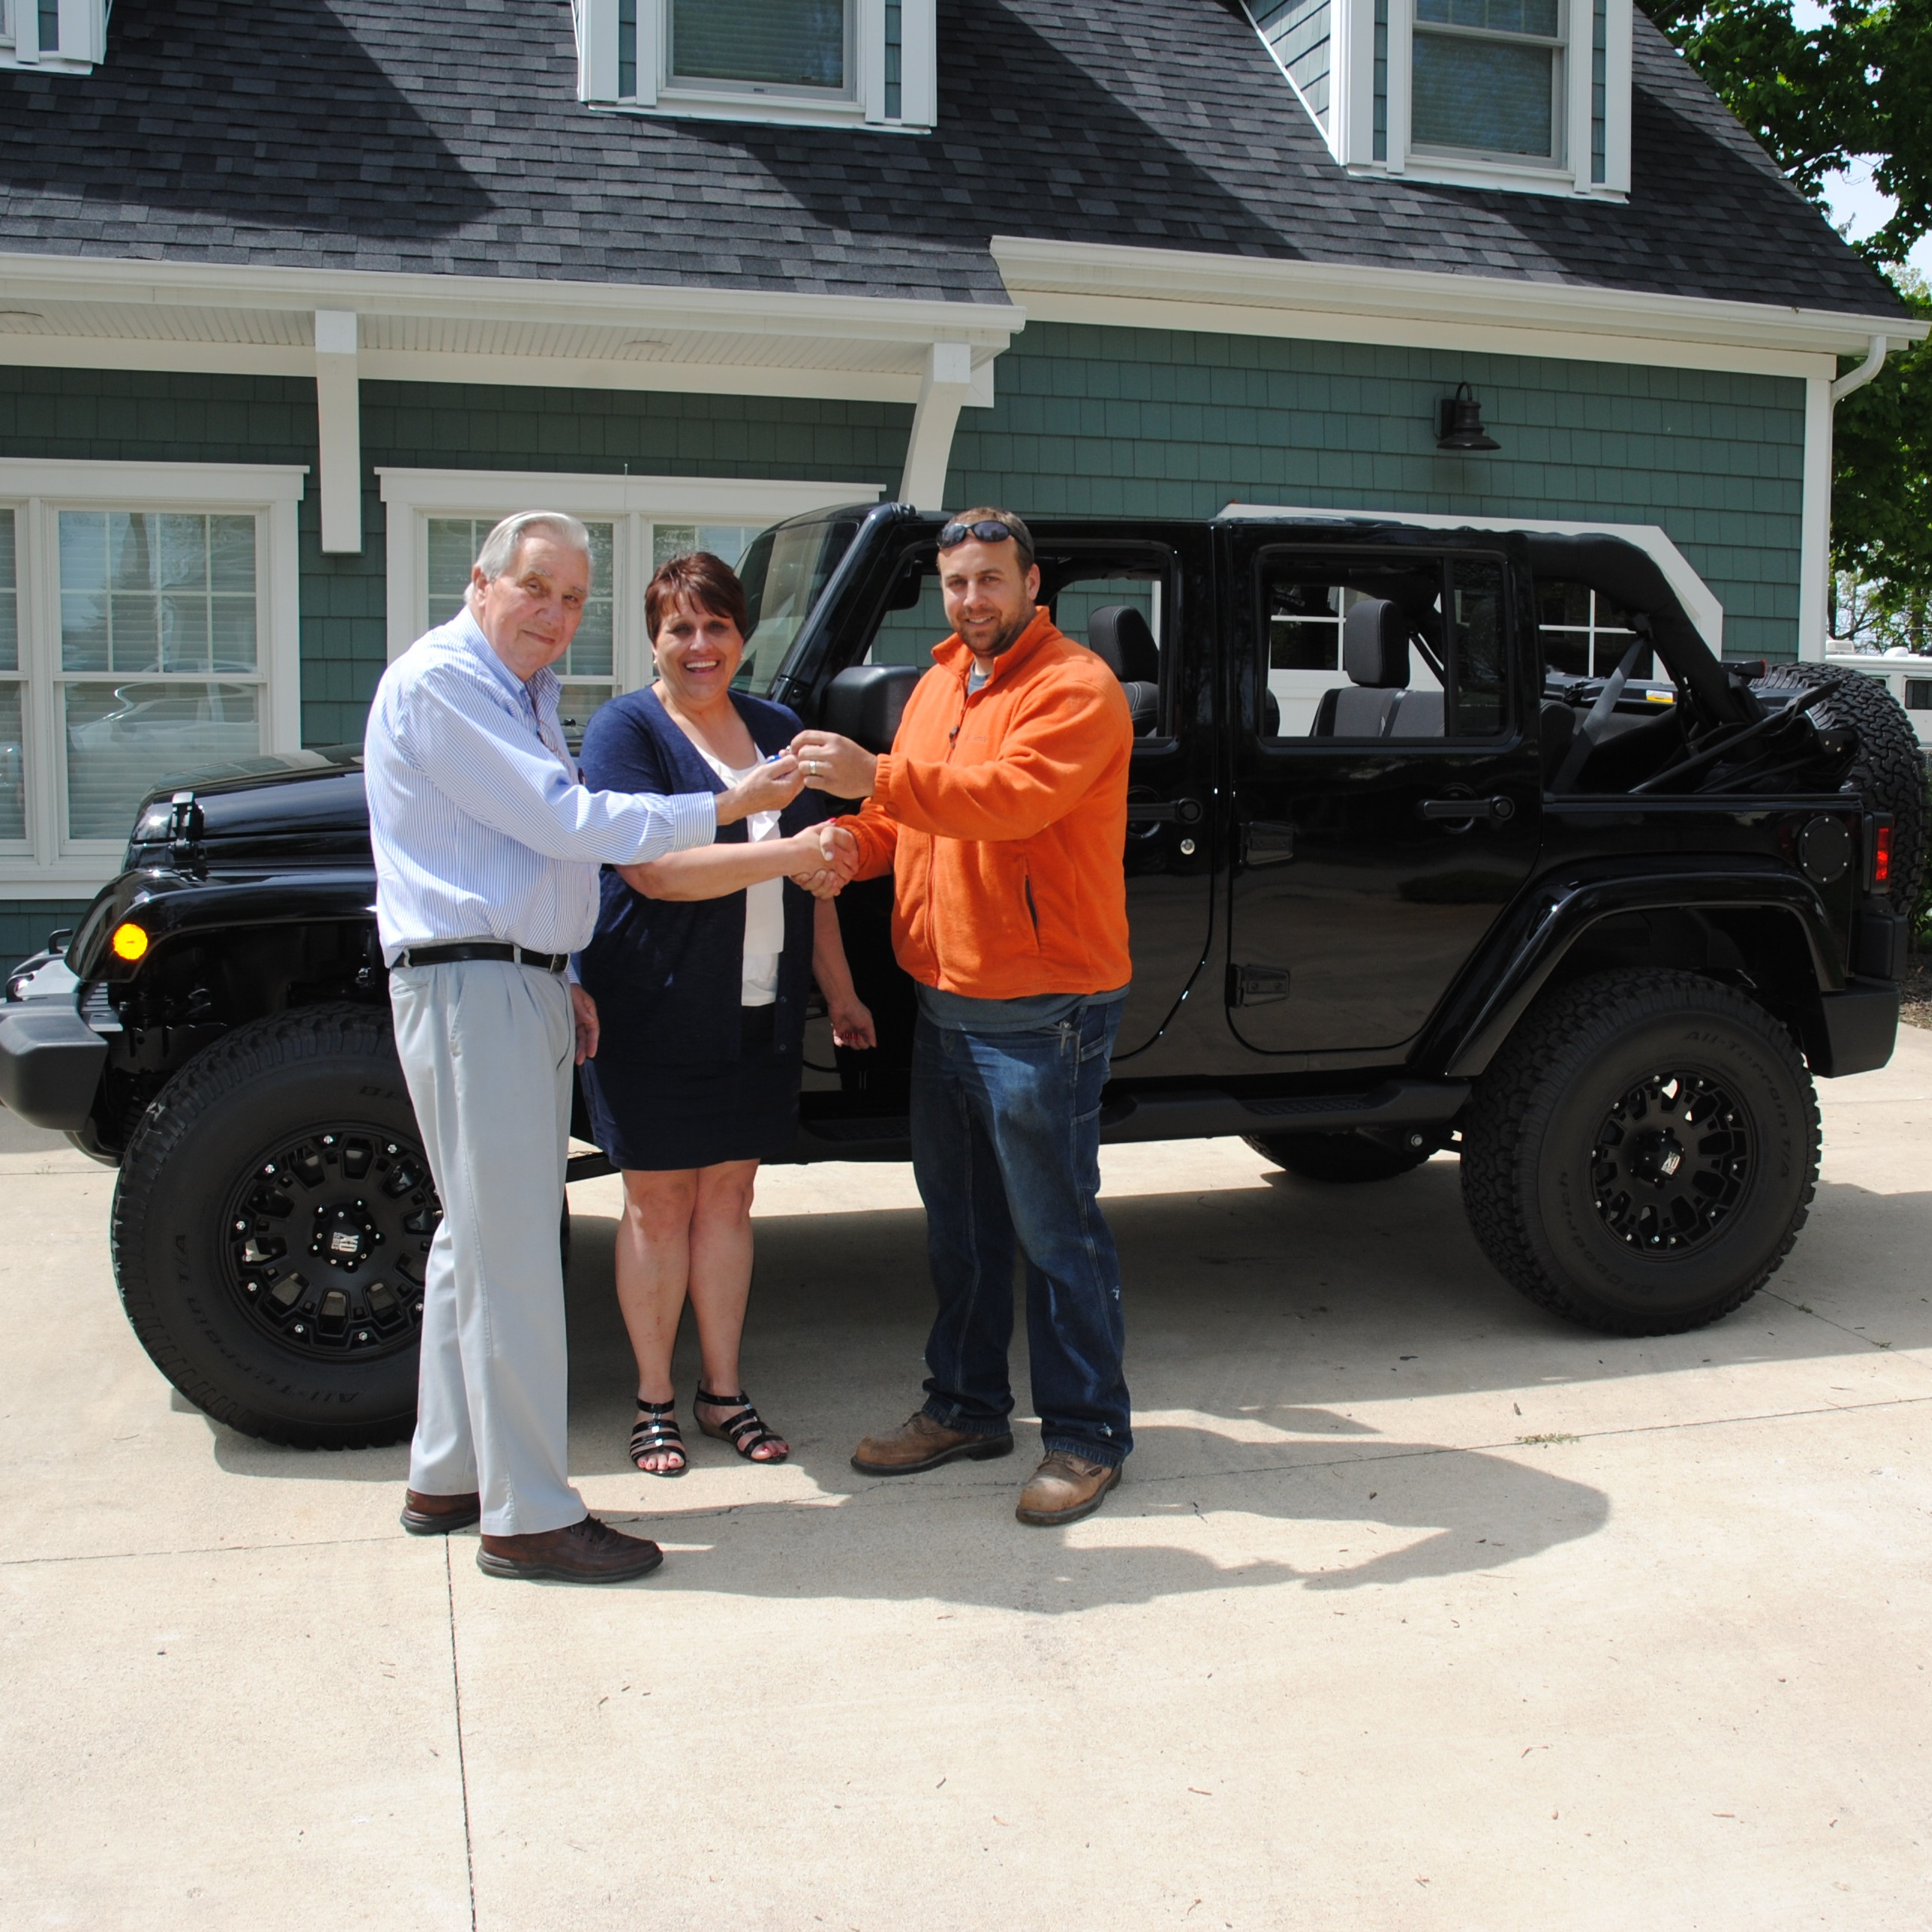 jeep donation inkfreenews com rh inkfreenews com northern rose home health keysor funeral home north rose ny